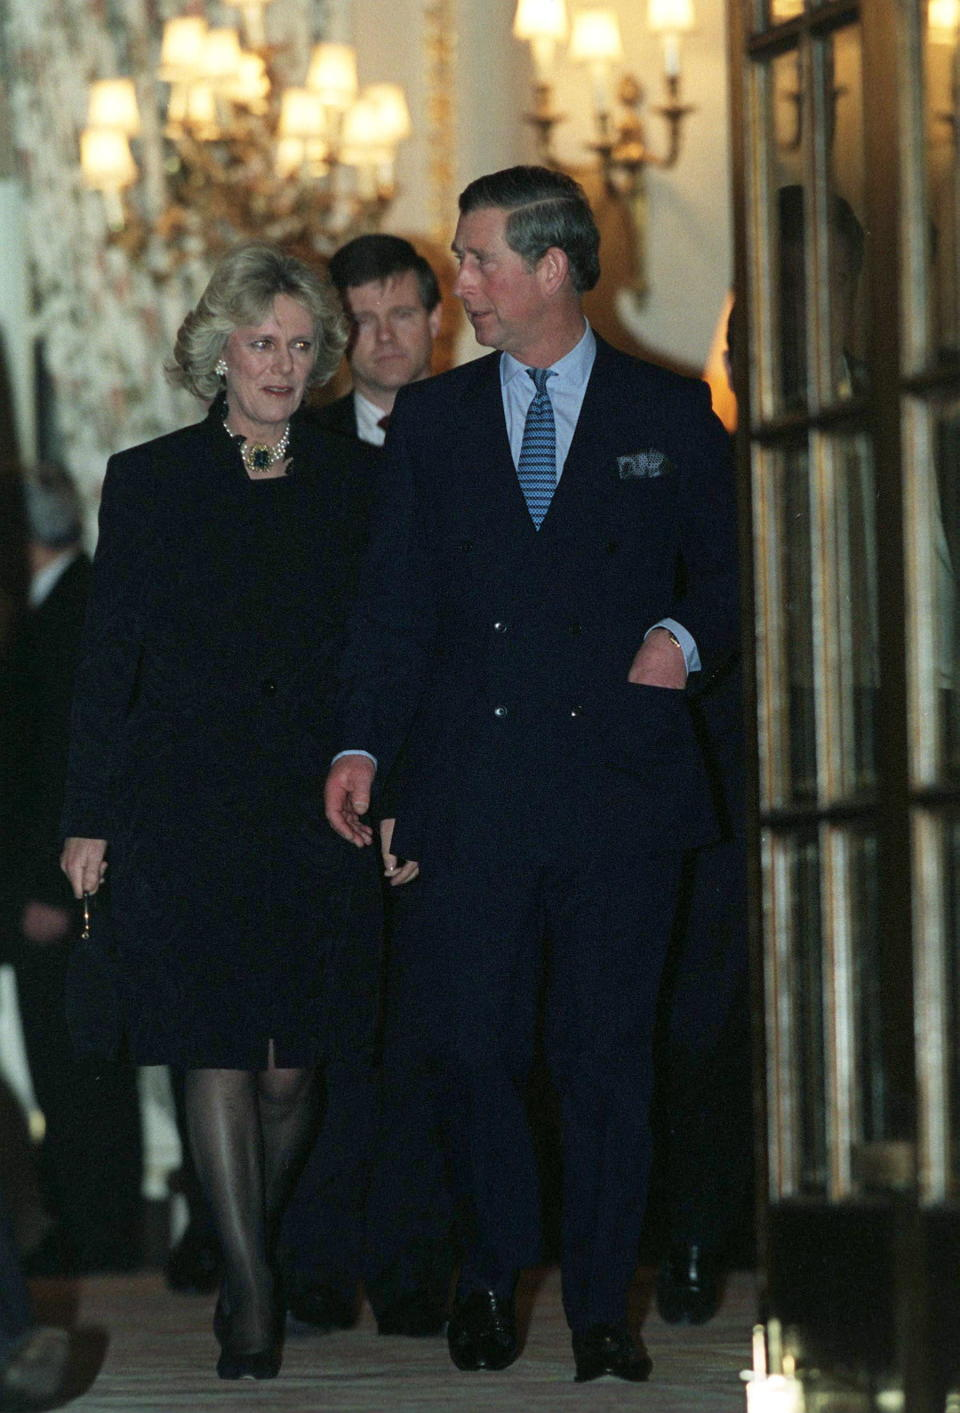 The pair were photographed leaving The Ritz in London in 1999 [Photo: Getty]